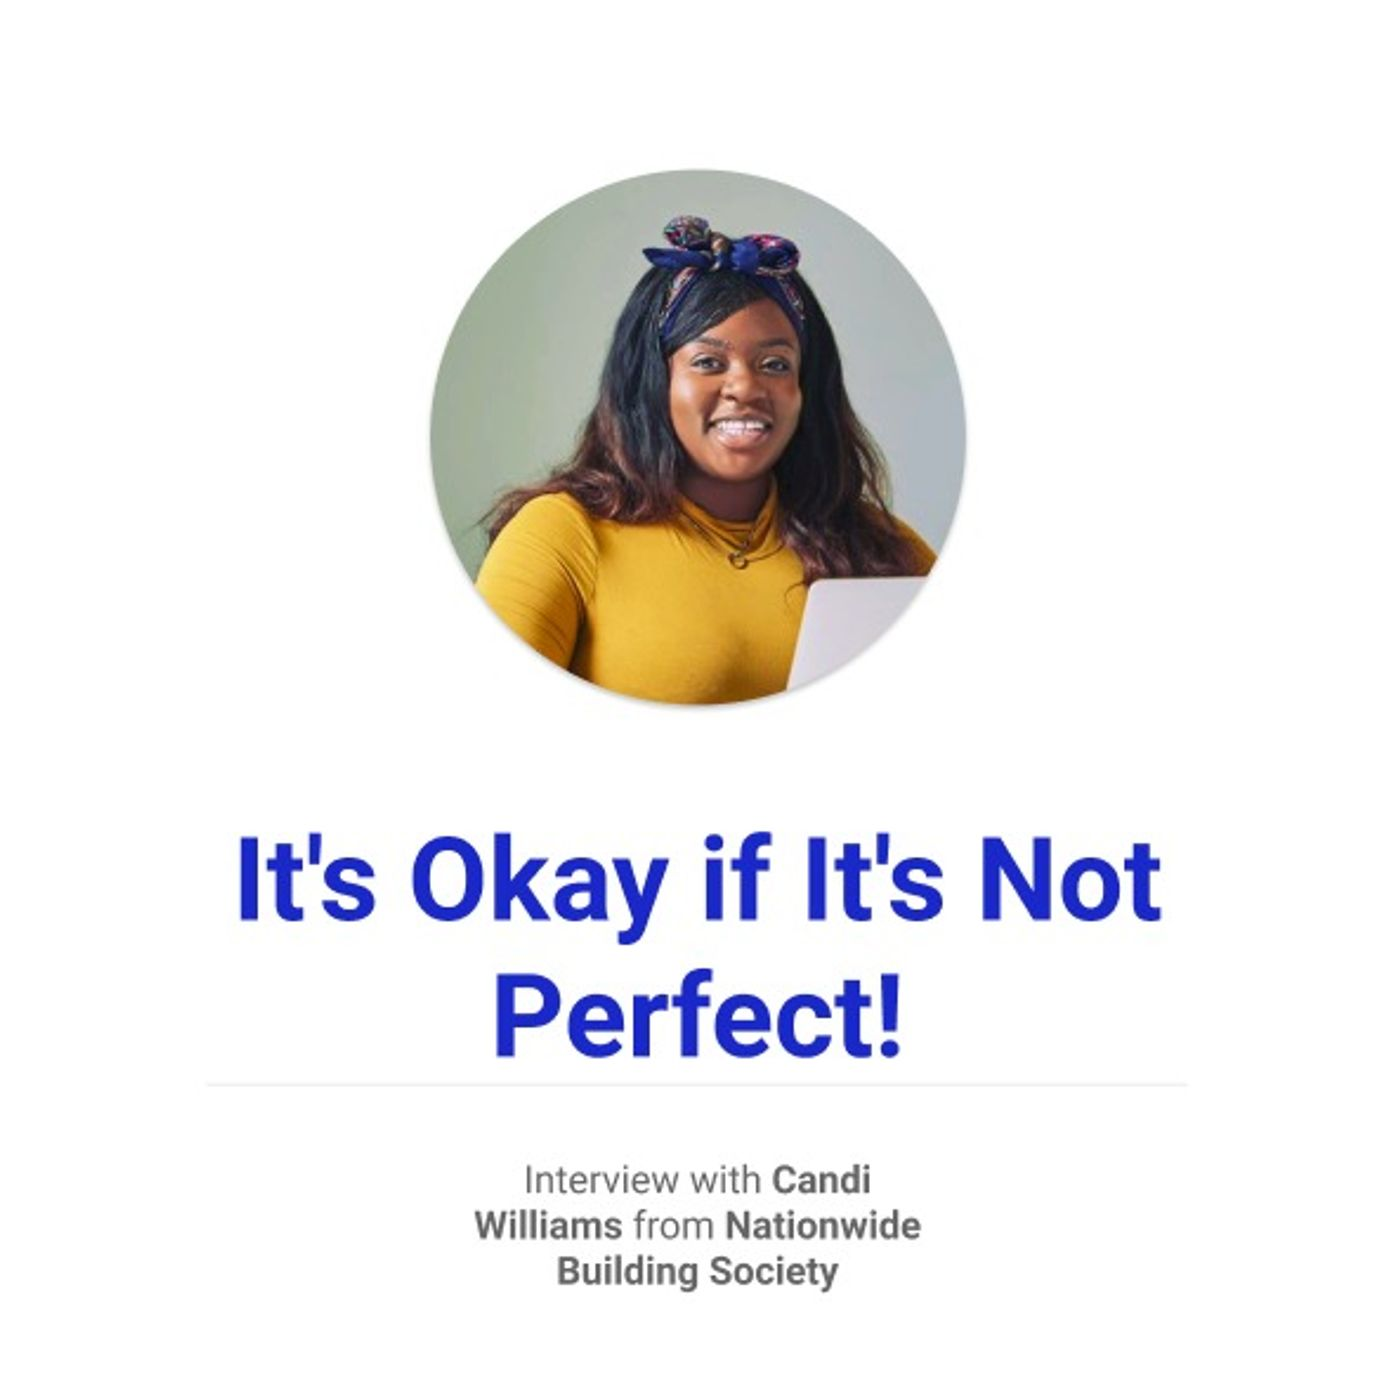 It's okay if it's not perfect!